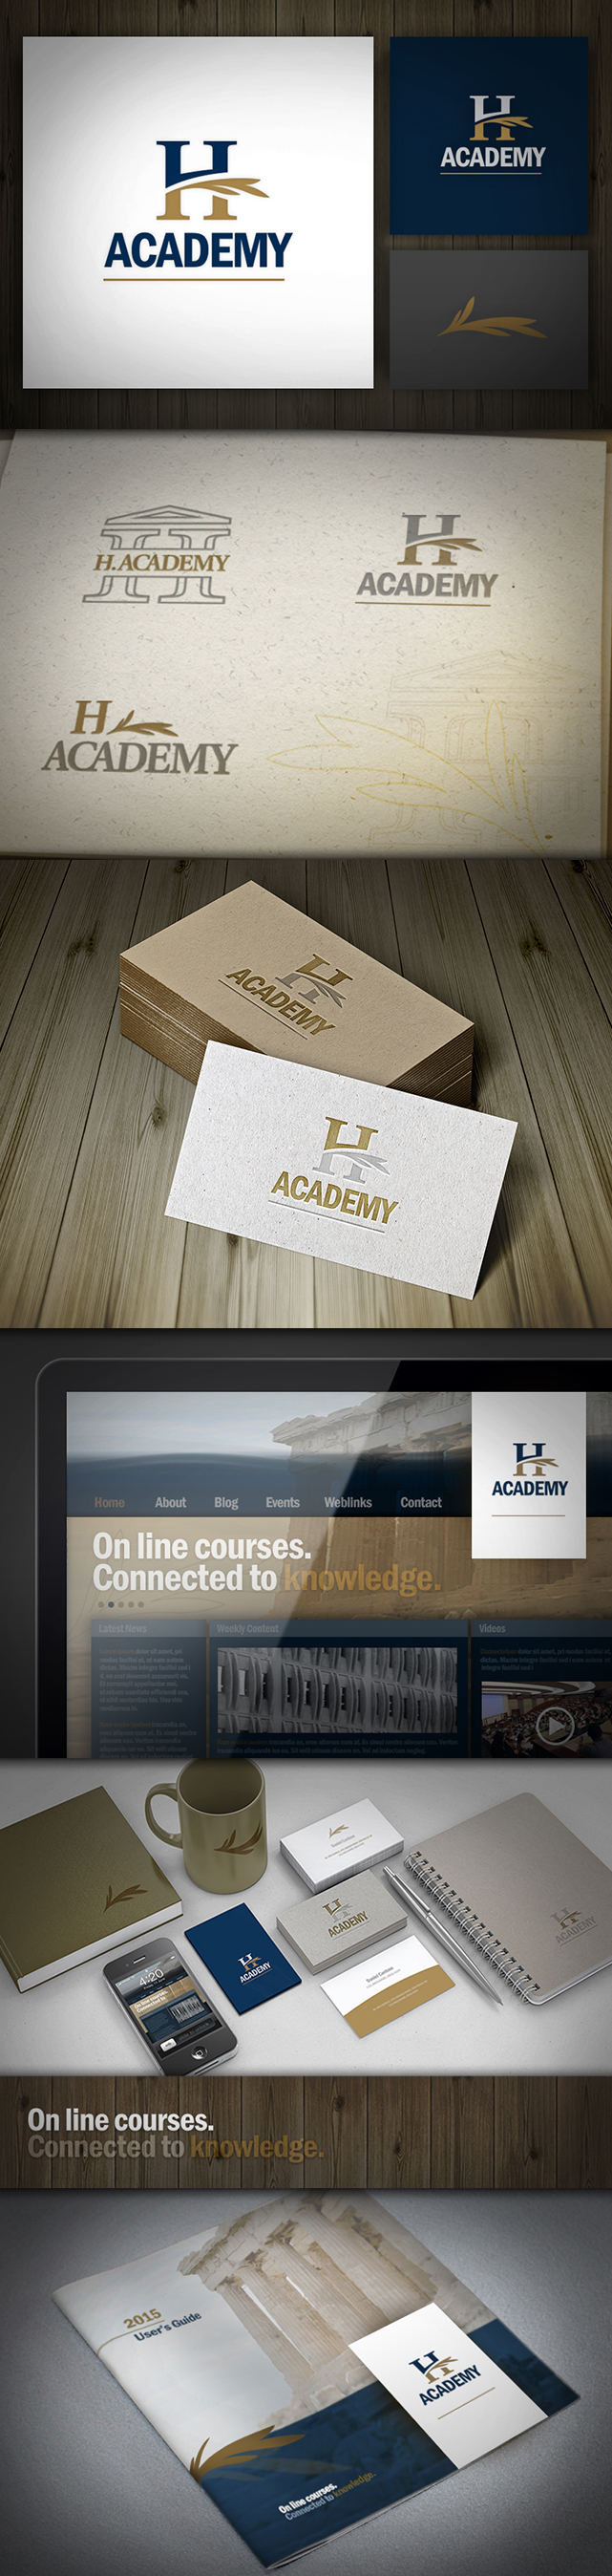 2015 H Academy Online Courses Identity See more here